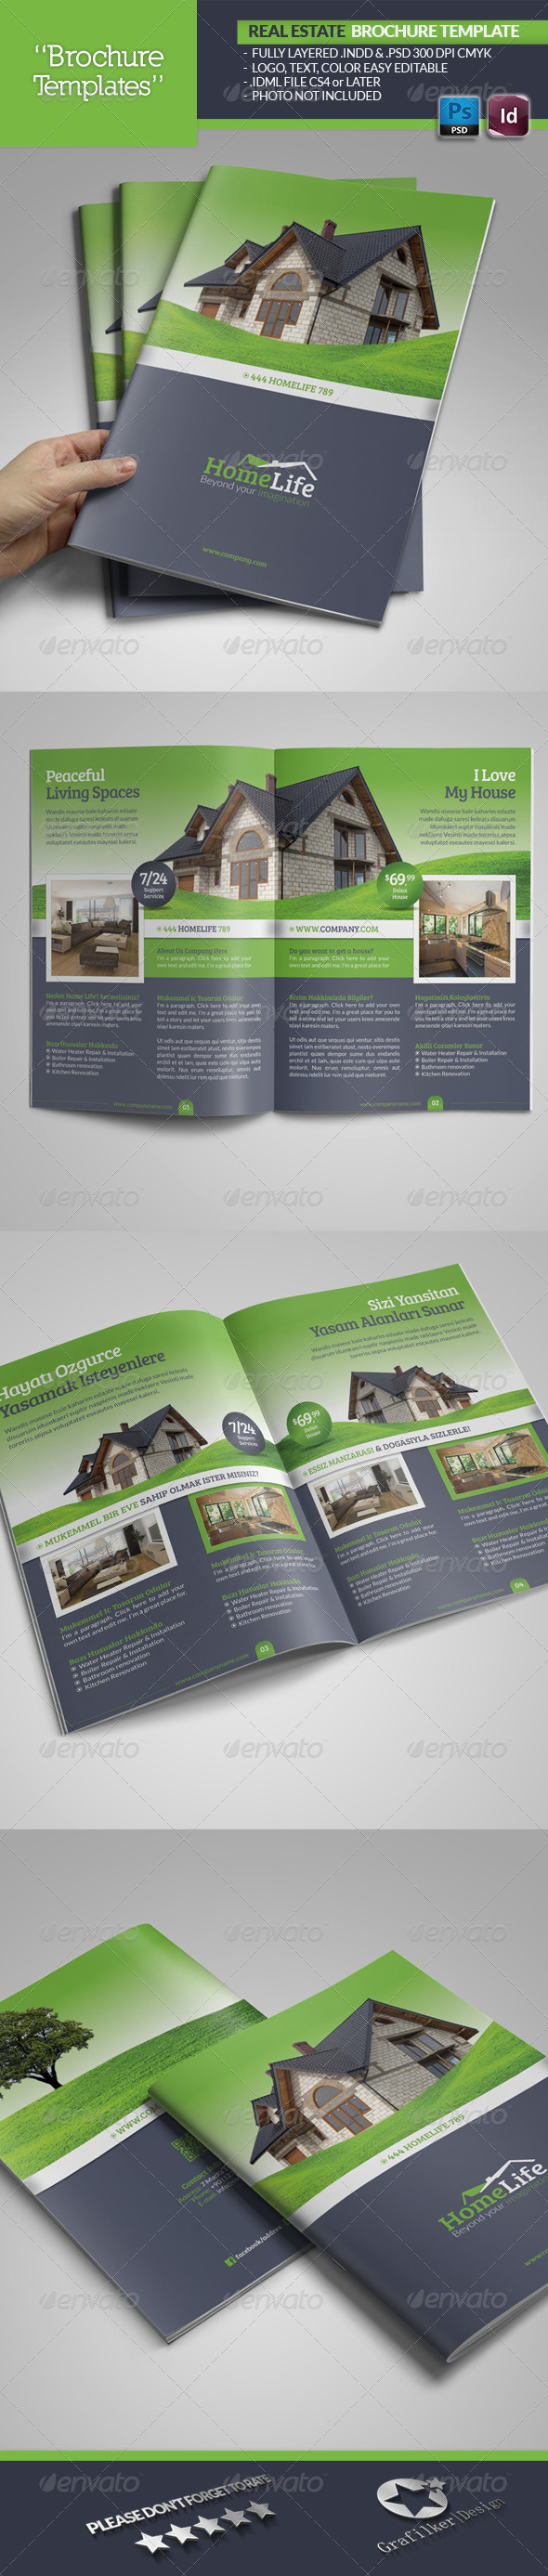 GraphicRiver Real Estate Brochure Template 5225584